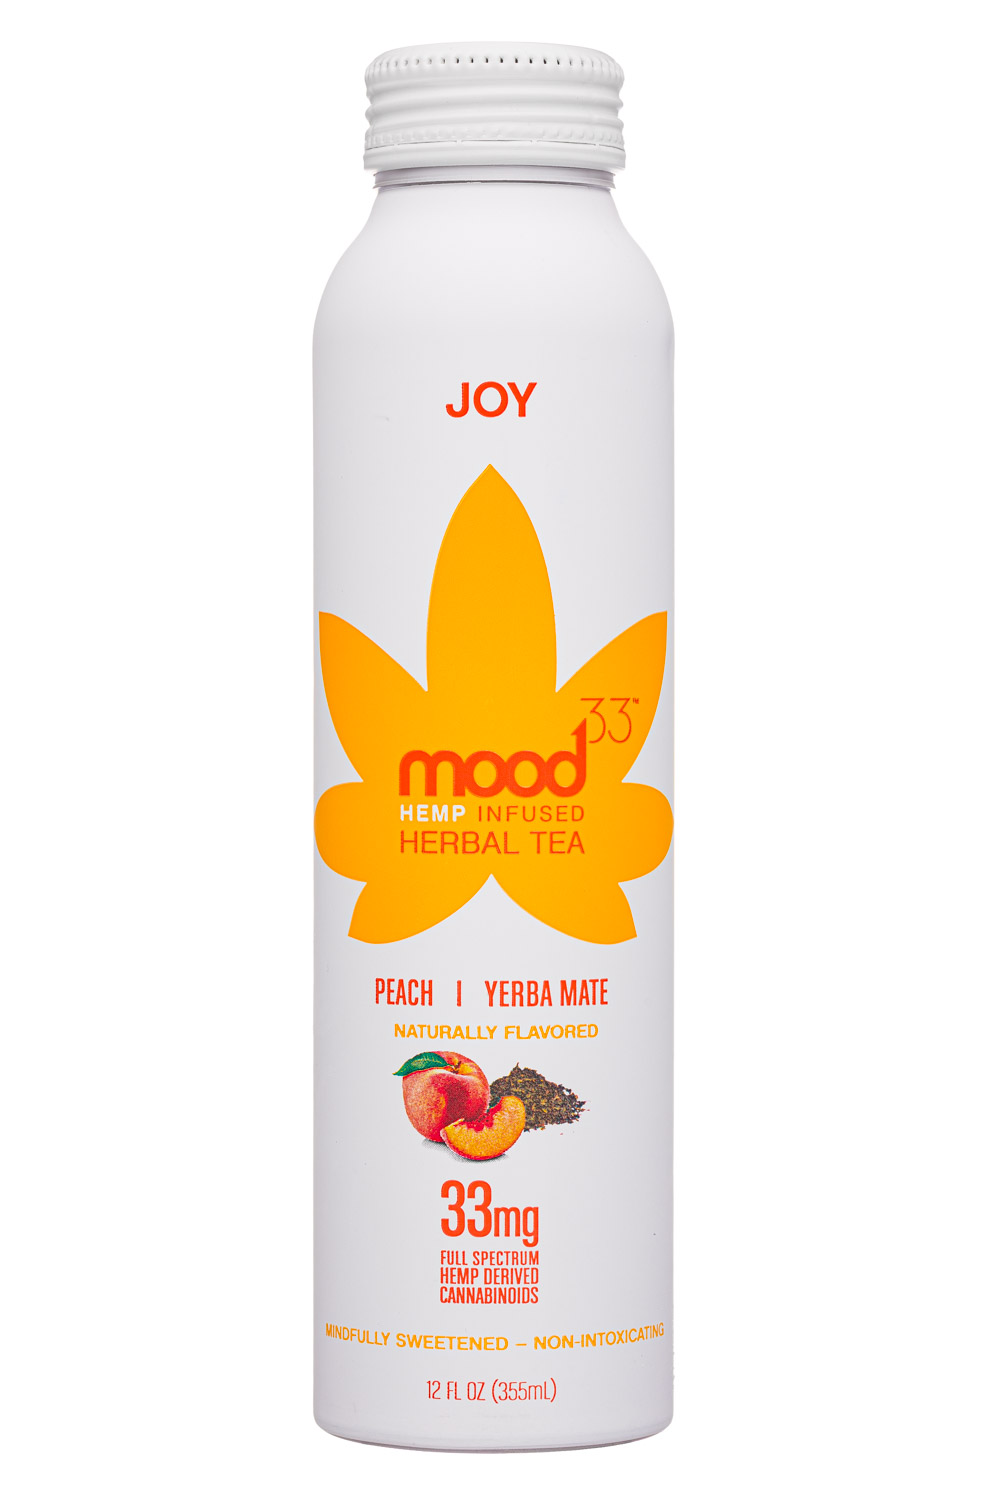 JOY: Peach, Yerba Mate. CBD 33mg